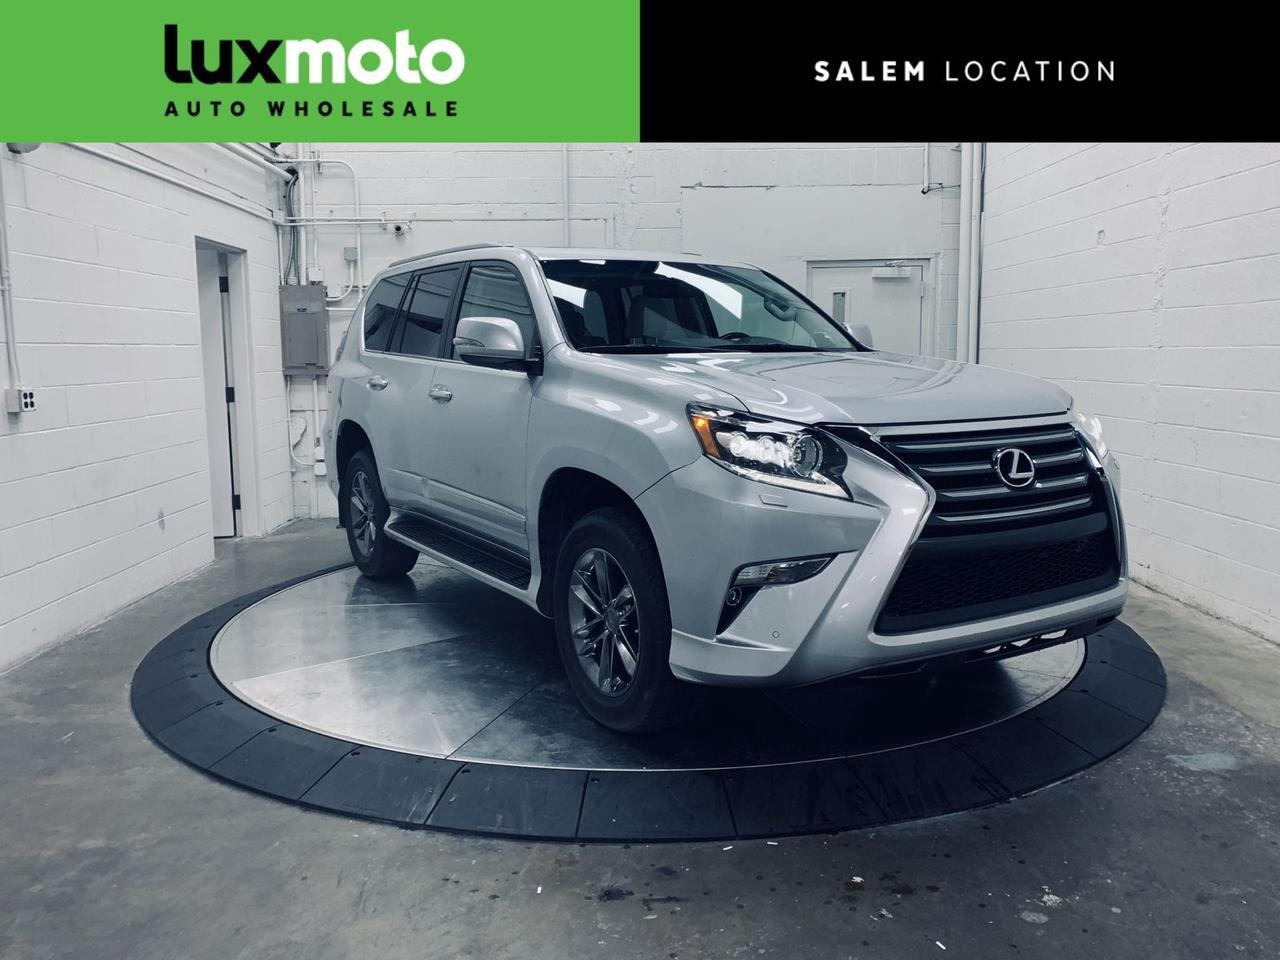 2017 Lexus GX 460 Blind Spot Monitor F-Sport Wheel Upgrade Portland OR